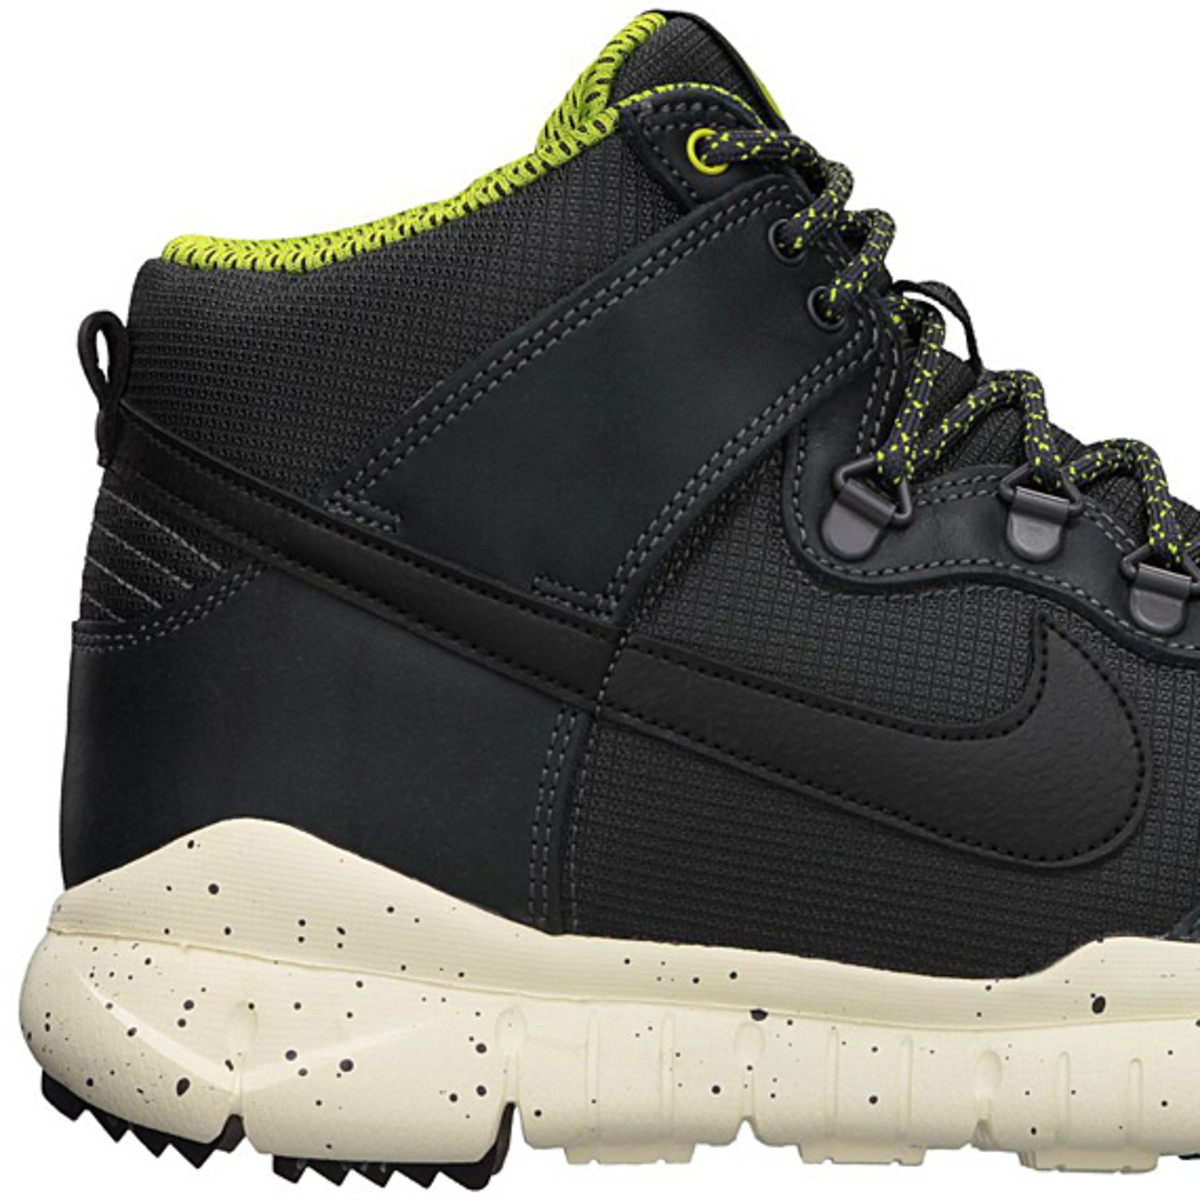 nike-dunk-hi-winter-anthracite-black-atomic green-cashmere-02